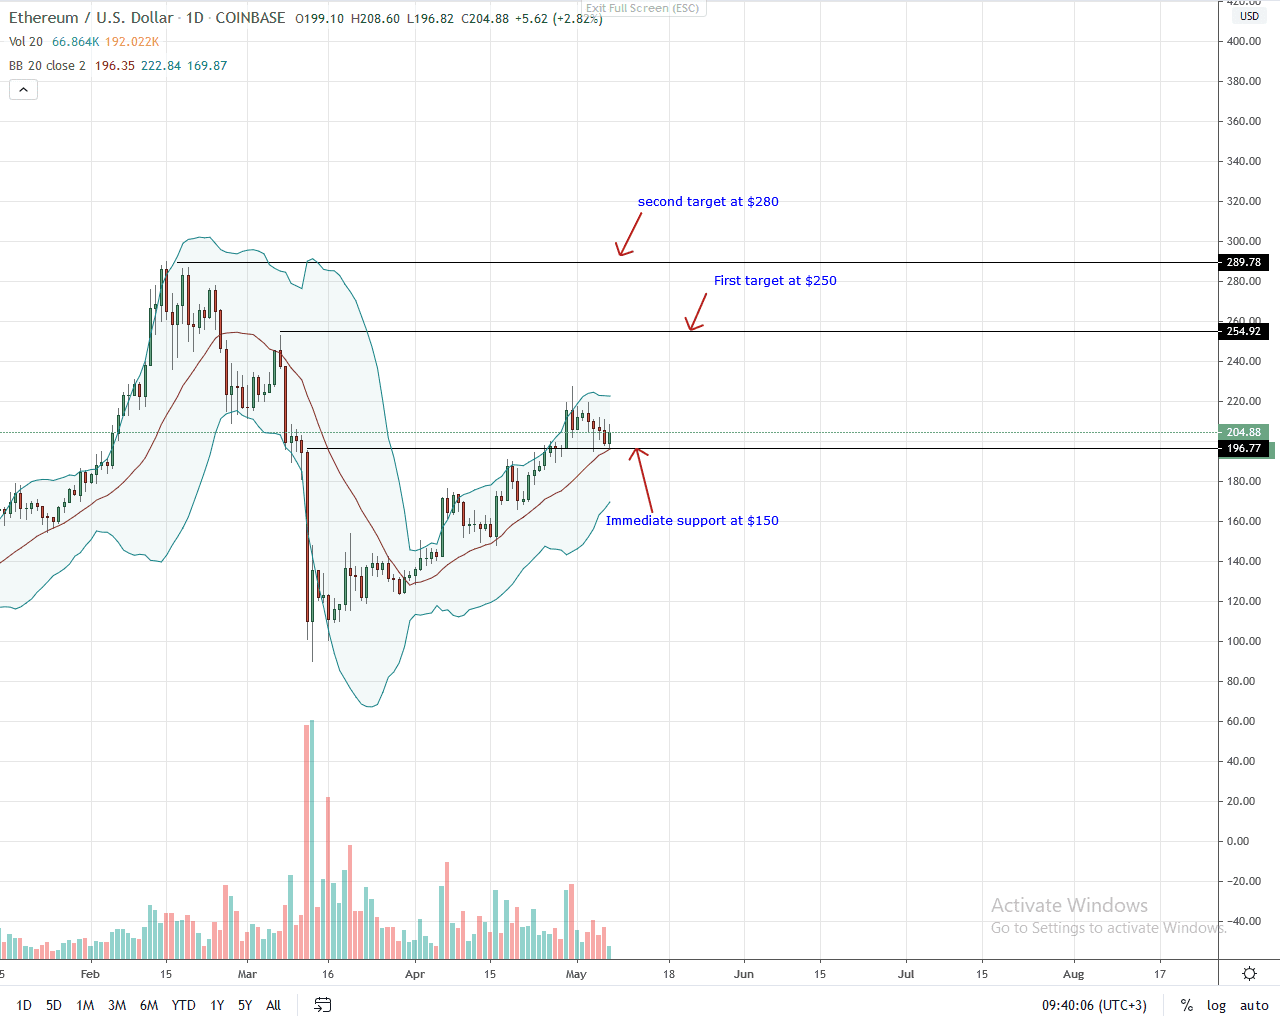 Ethereum Daily Chart for May 7